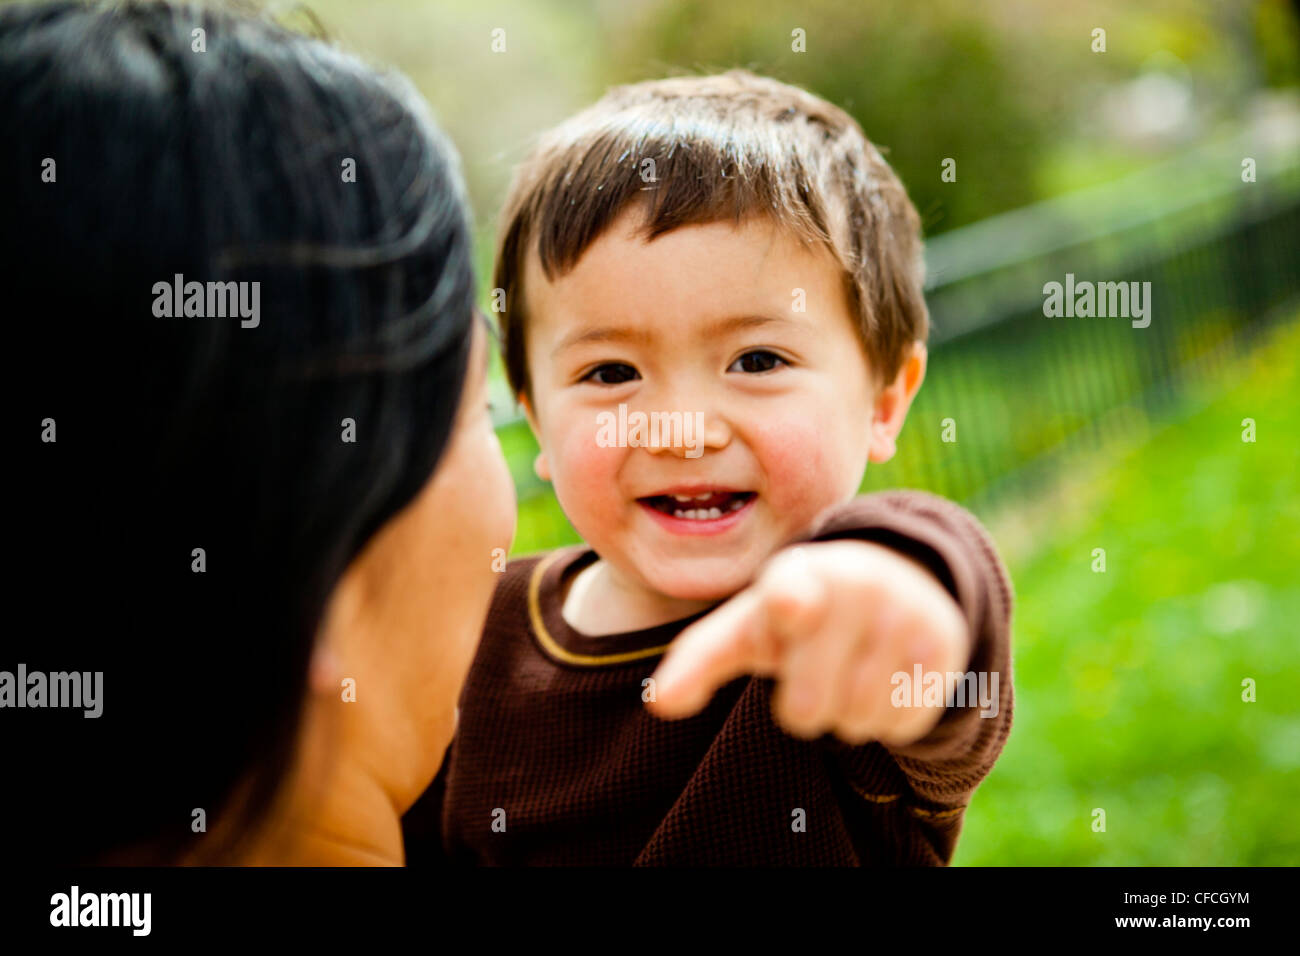 a mother holds and kisses her 2 year old son. - Stock Image